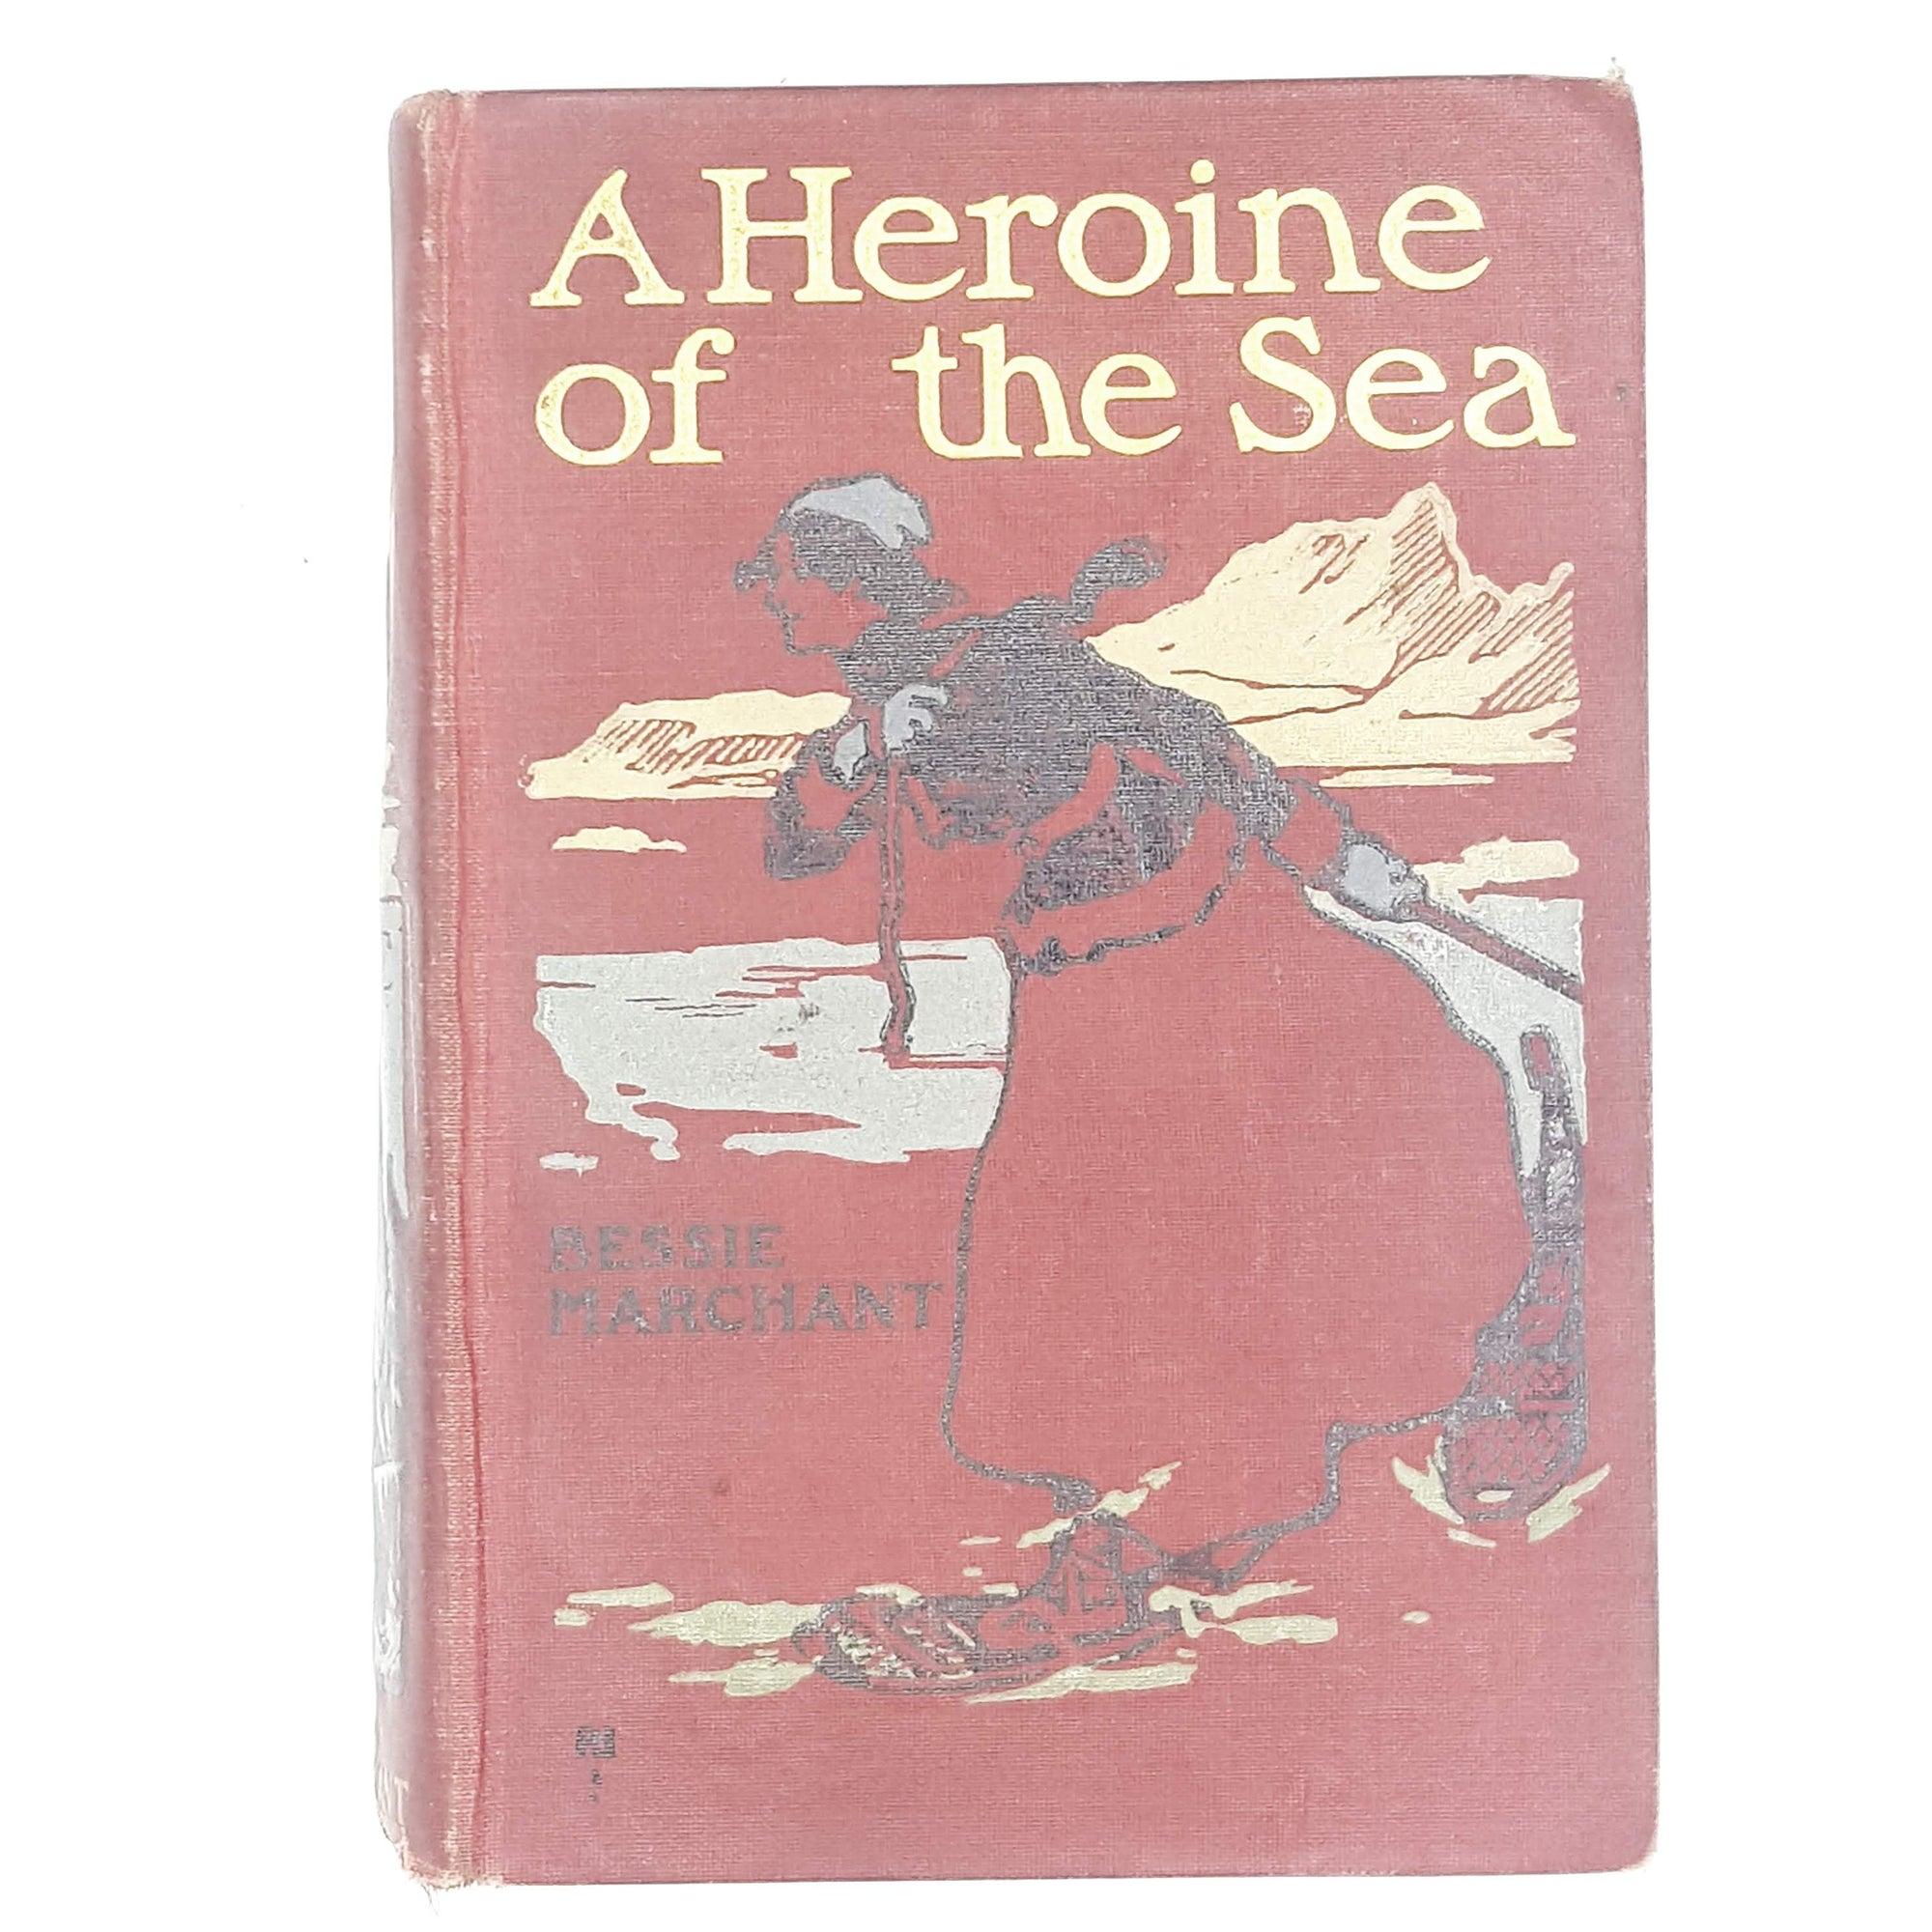 a-heroine-of-the-sea-by-bessie-marchant-country-house-library